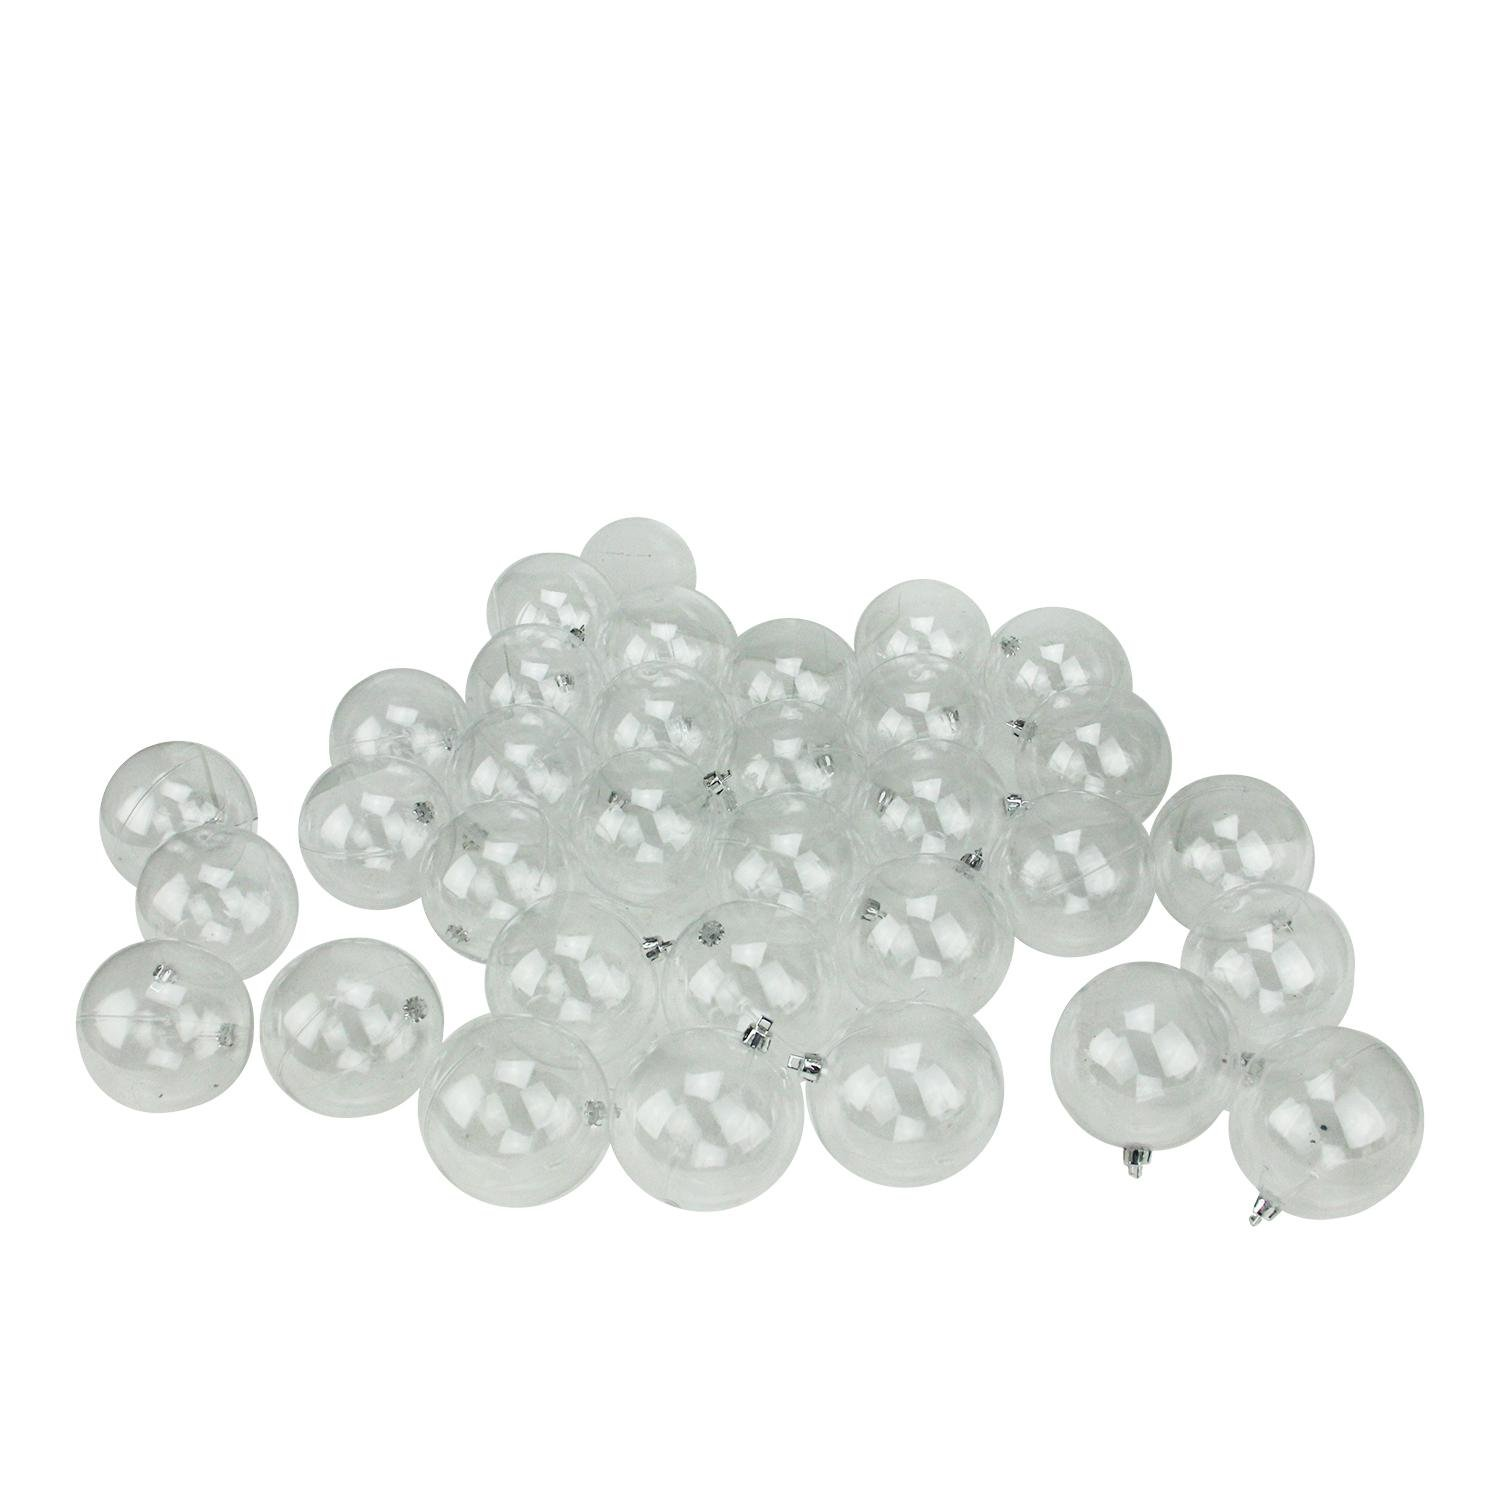 32ct Clear Shatterproof Christmas Ball Ornaments 3.25'' (80mm)